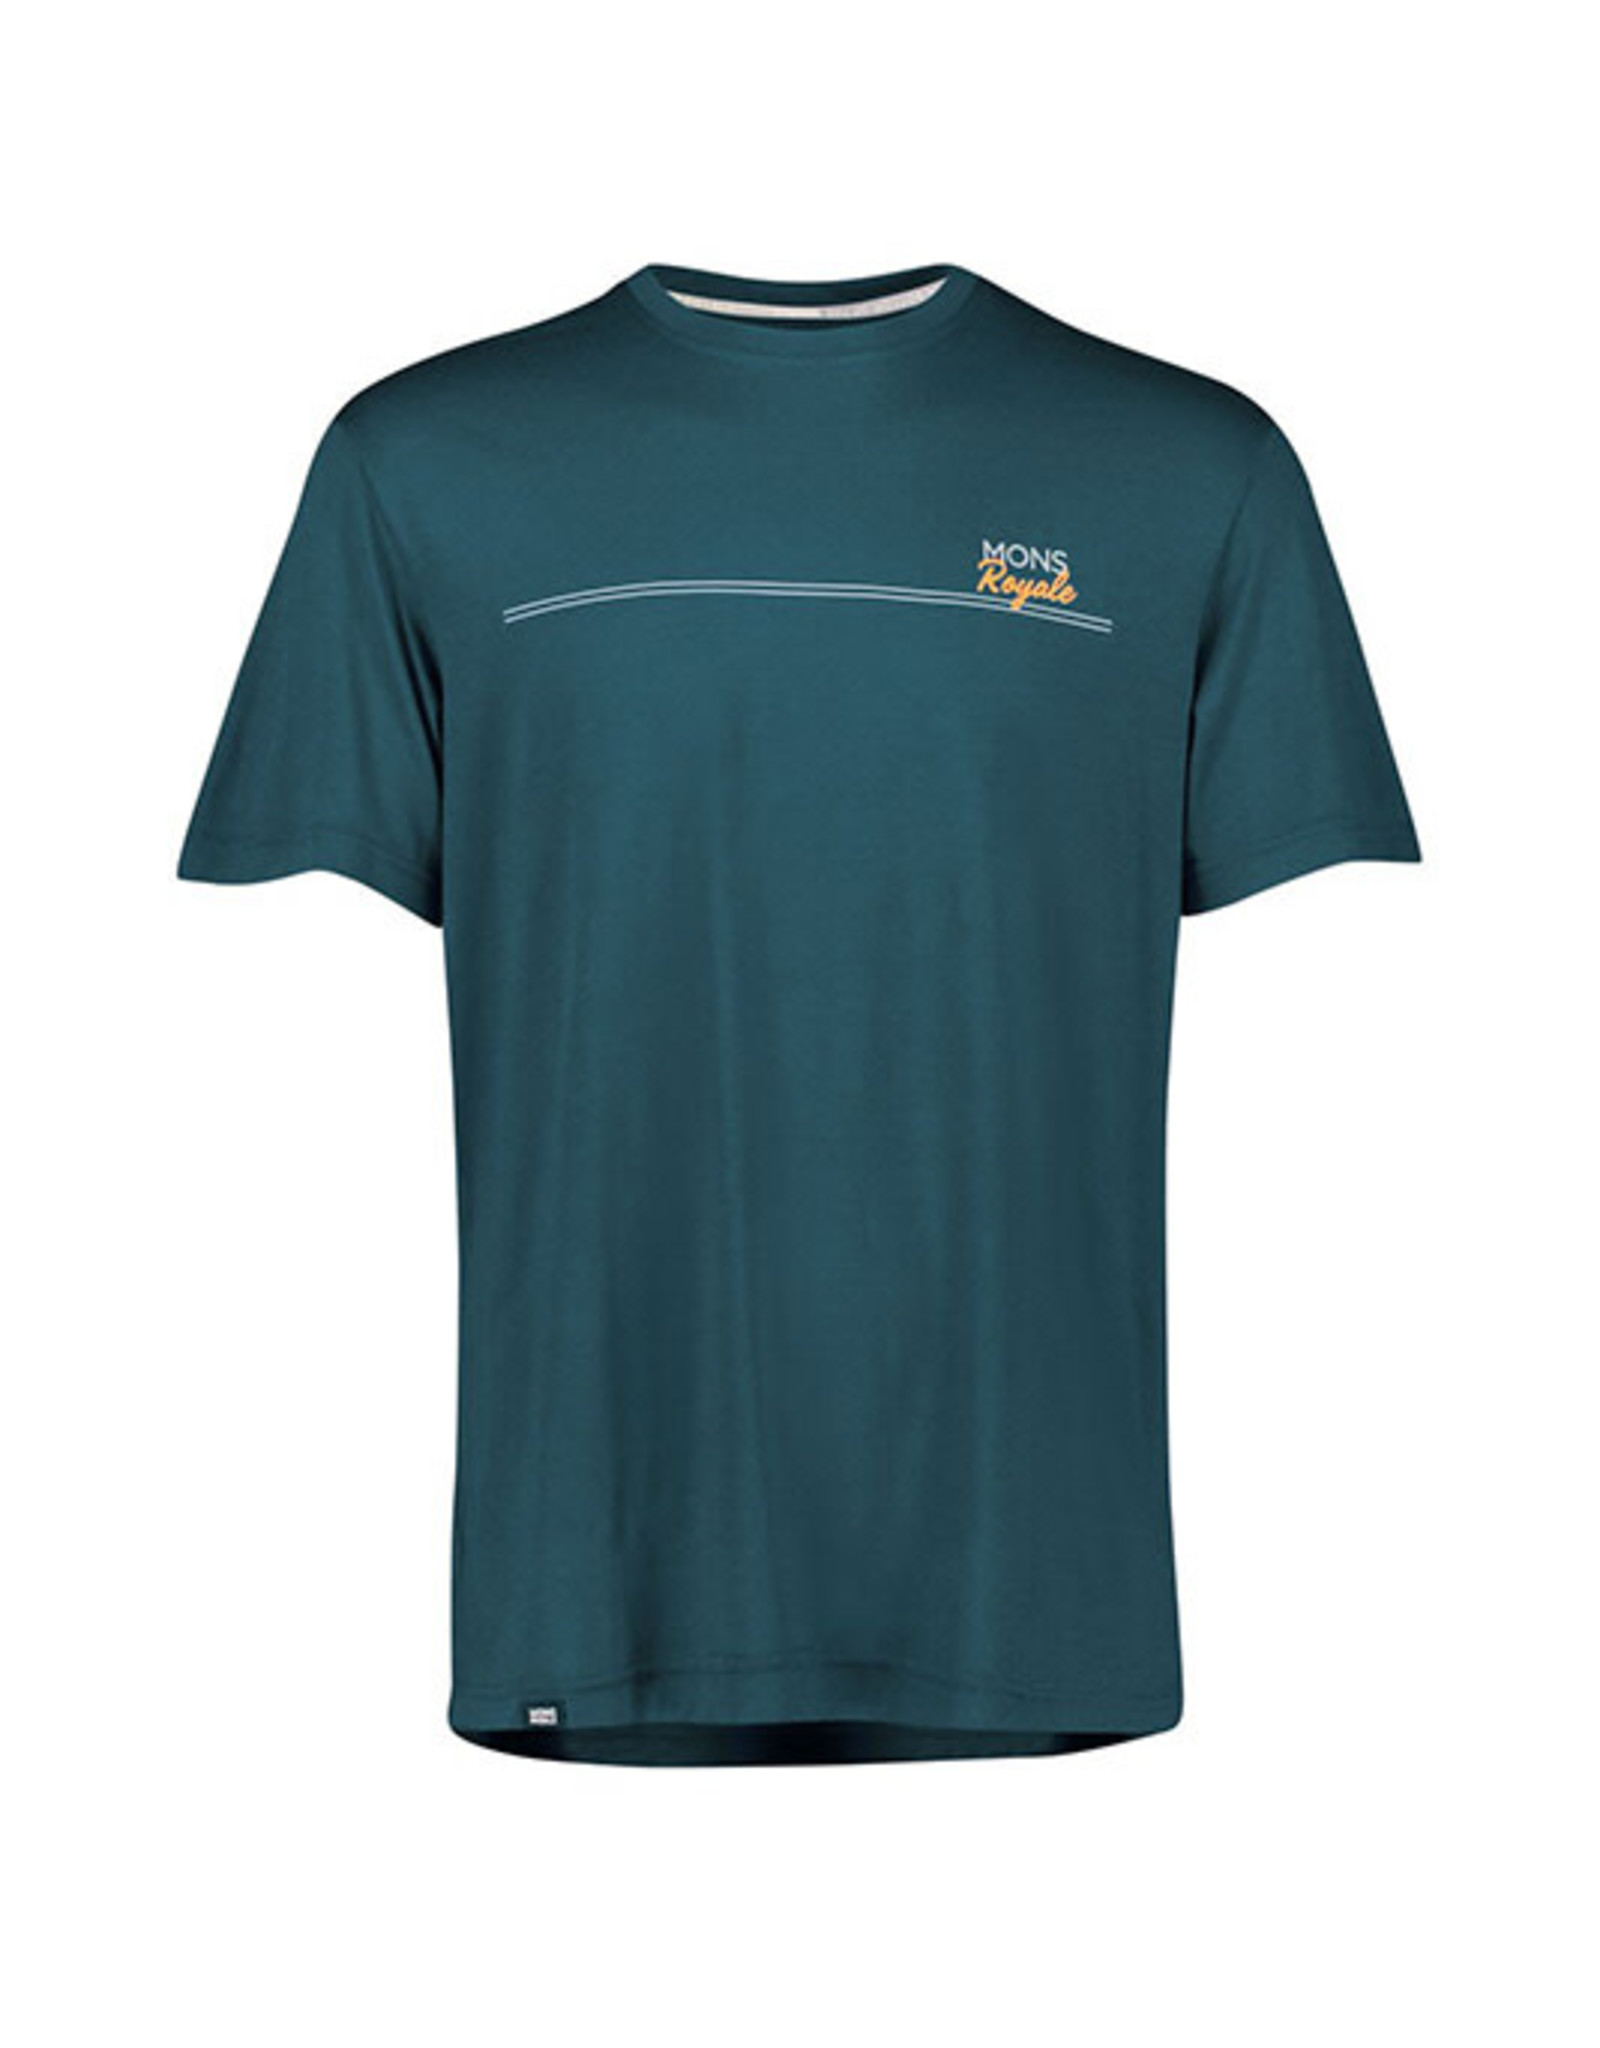 MONS ROYALE Mens Tarn Freeride T Atlantic XL